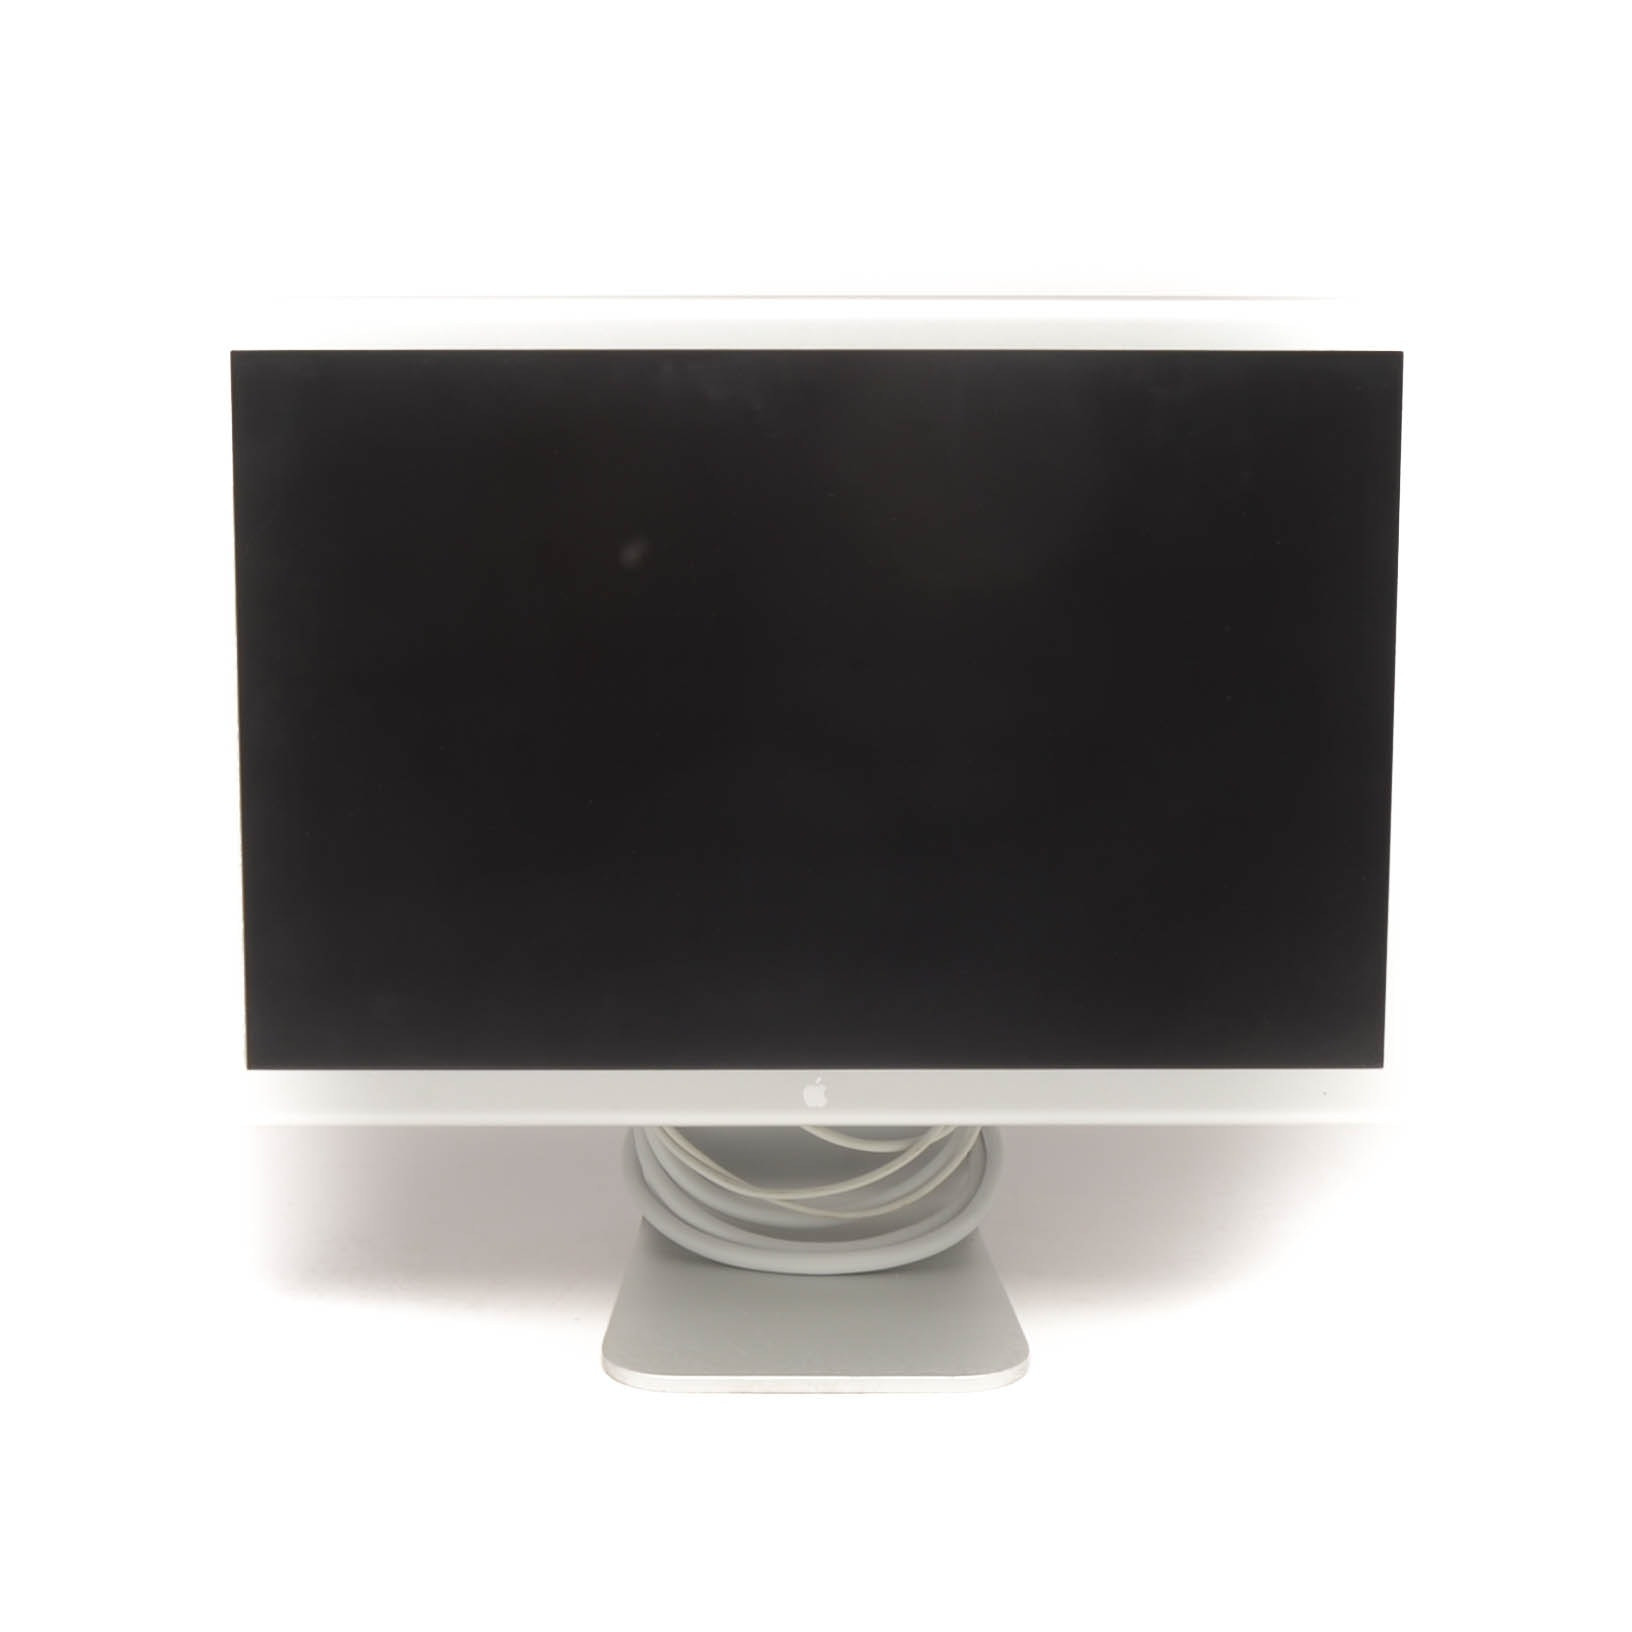 "20"" Apple Cinema Display Monitor"